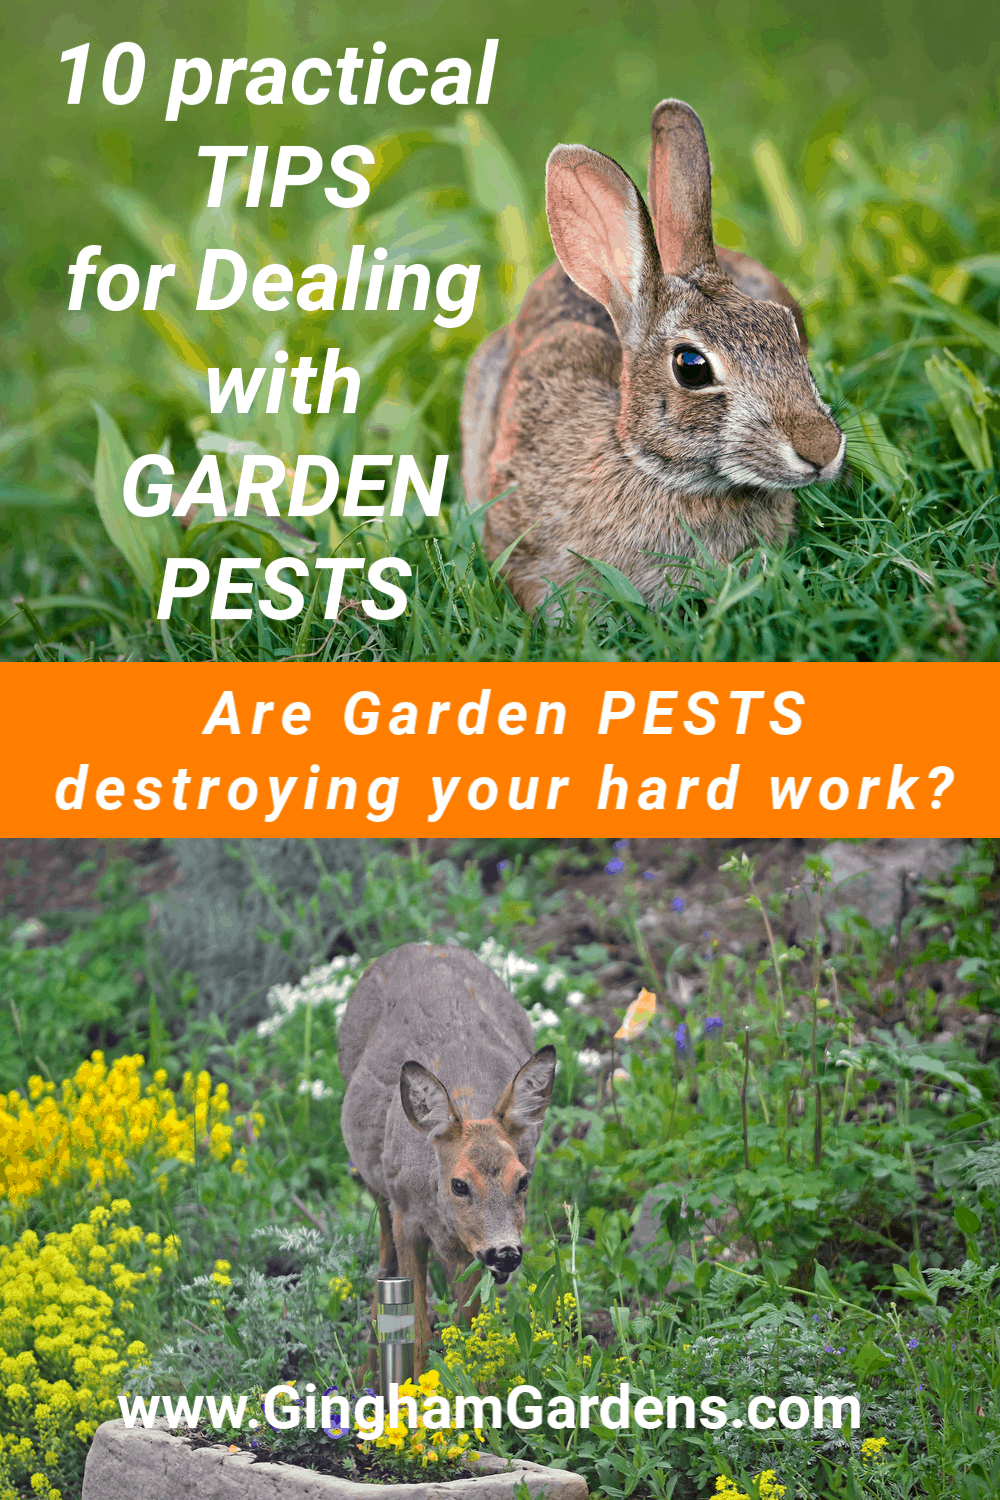 Images of Deer and Rabbit in a Garden with text overlay - 10 Tips for Dealing with Garden Pests